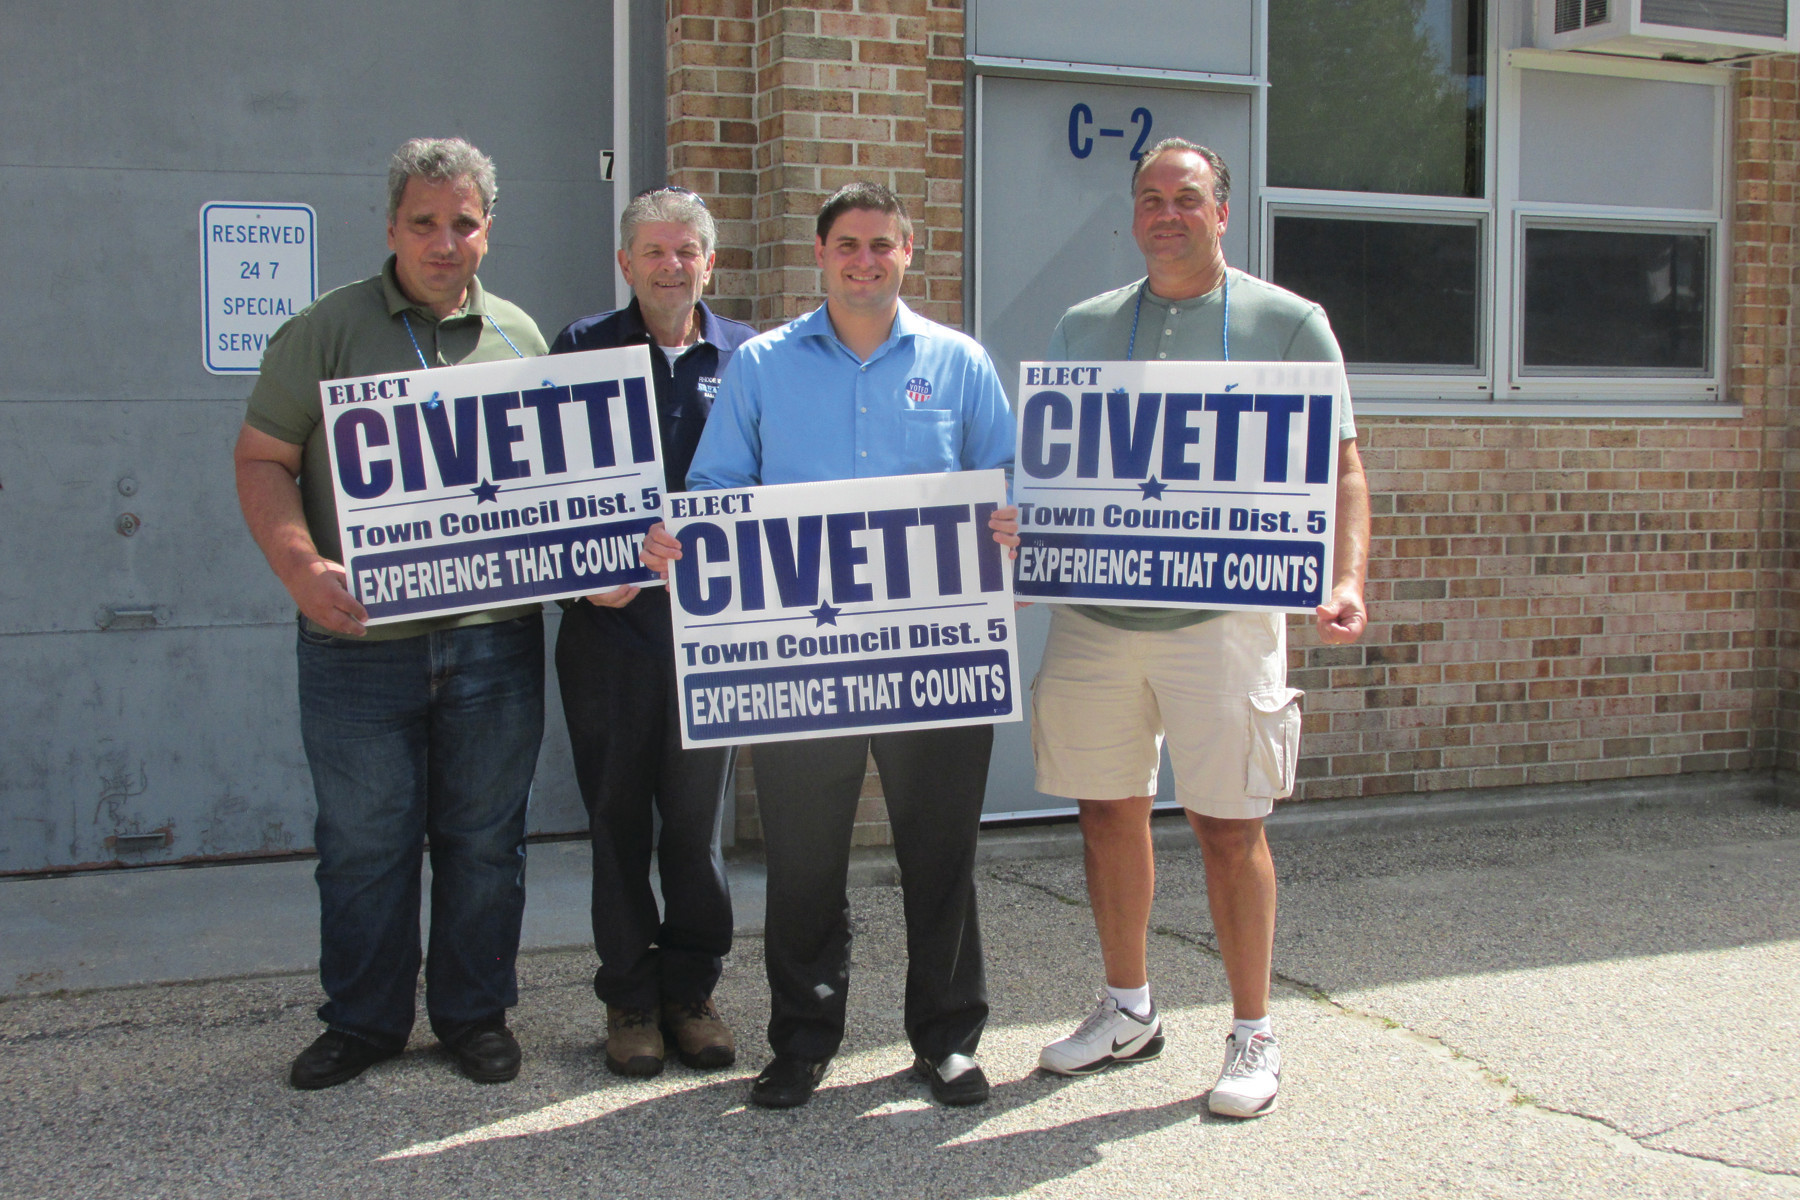 SHOWING SUPPORT: District 5 Town Council candidate Robert Civetti had many volunteers, including these four supporters who staffed the election poll at Johnston High School Tuesday.